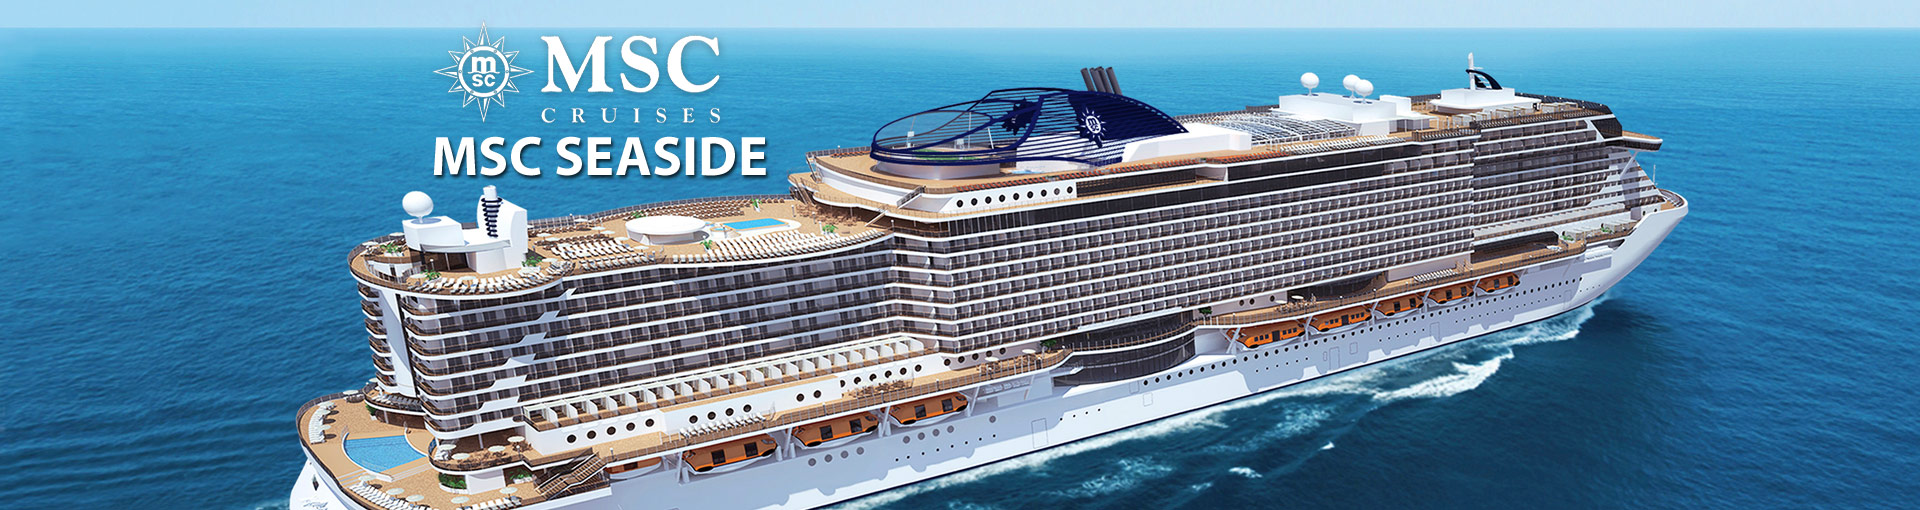 MSC Seaside Cruise Ship And MSC Seaside Destinations - Cruise deals from miami